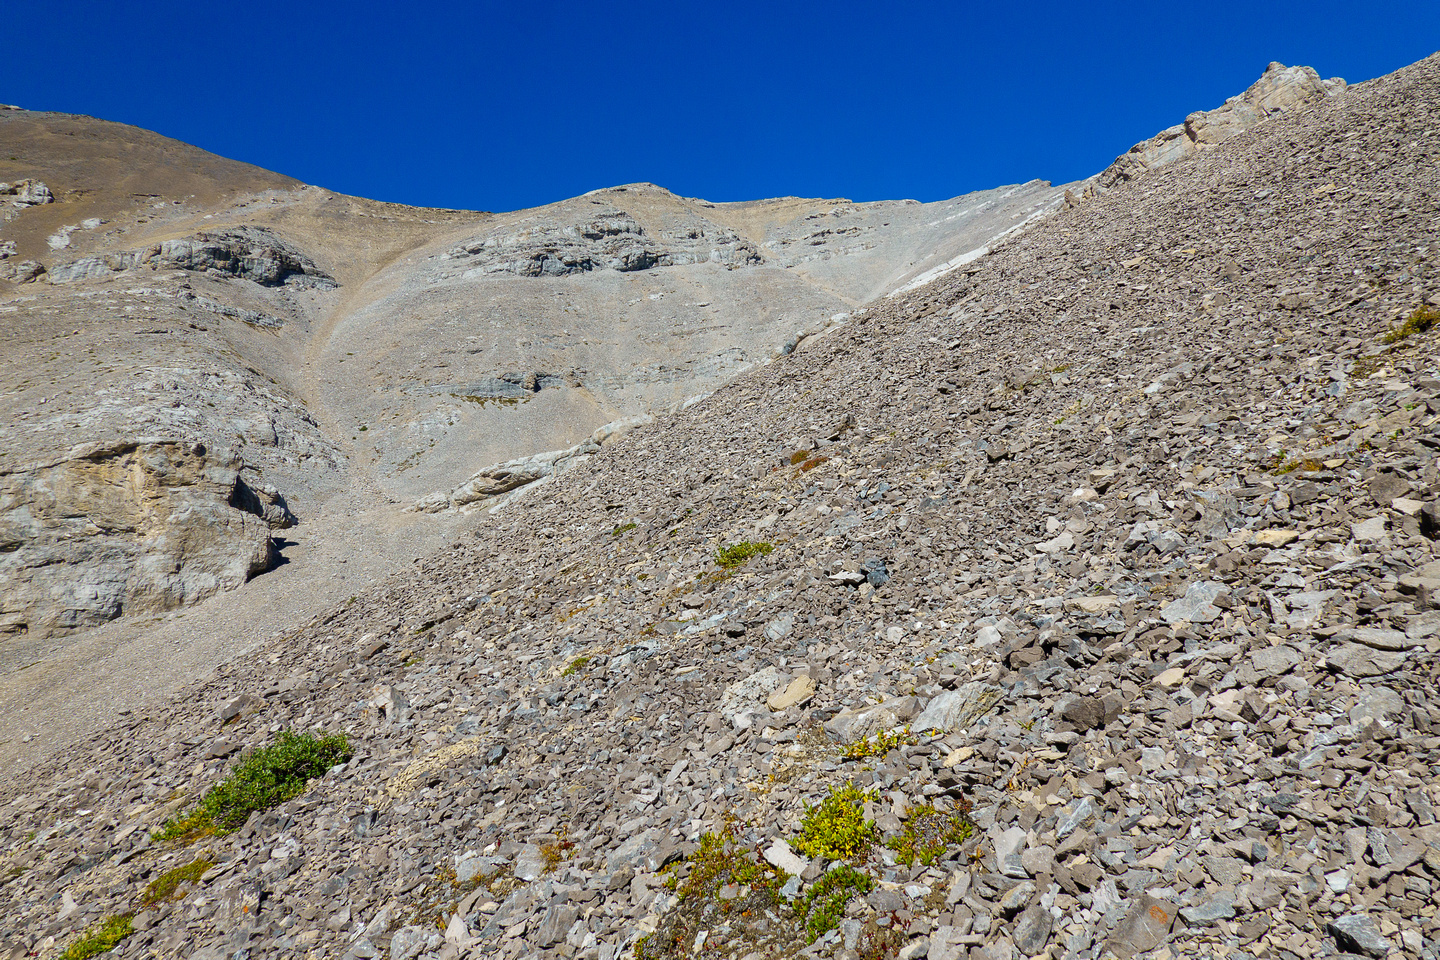 Hiking and side hilling above Sheep Creek to the SW bowl under the summit of Otuskwan.